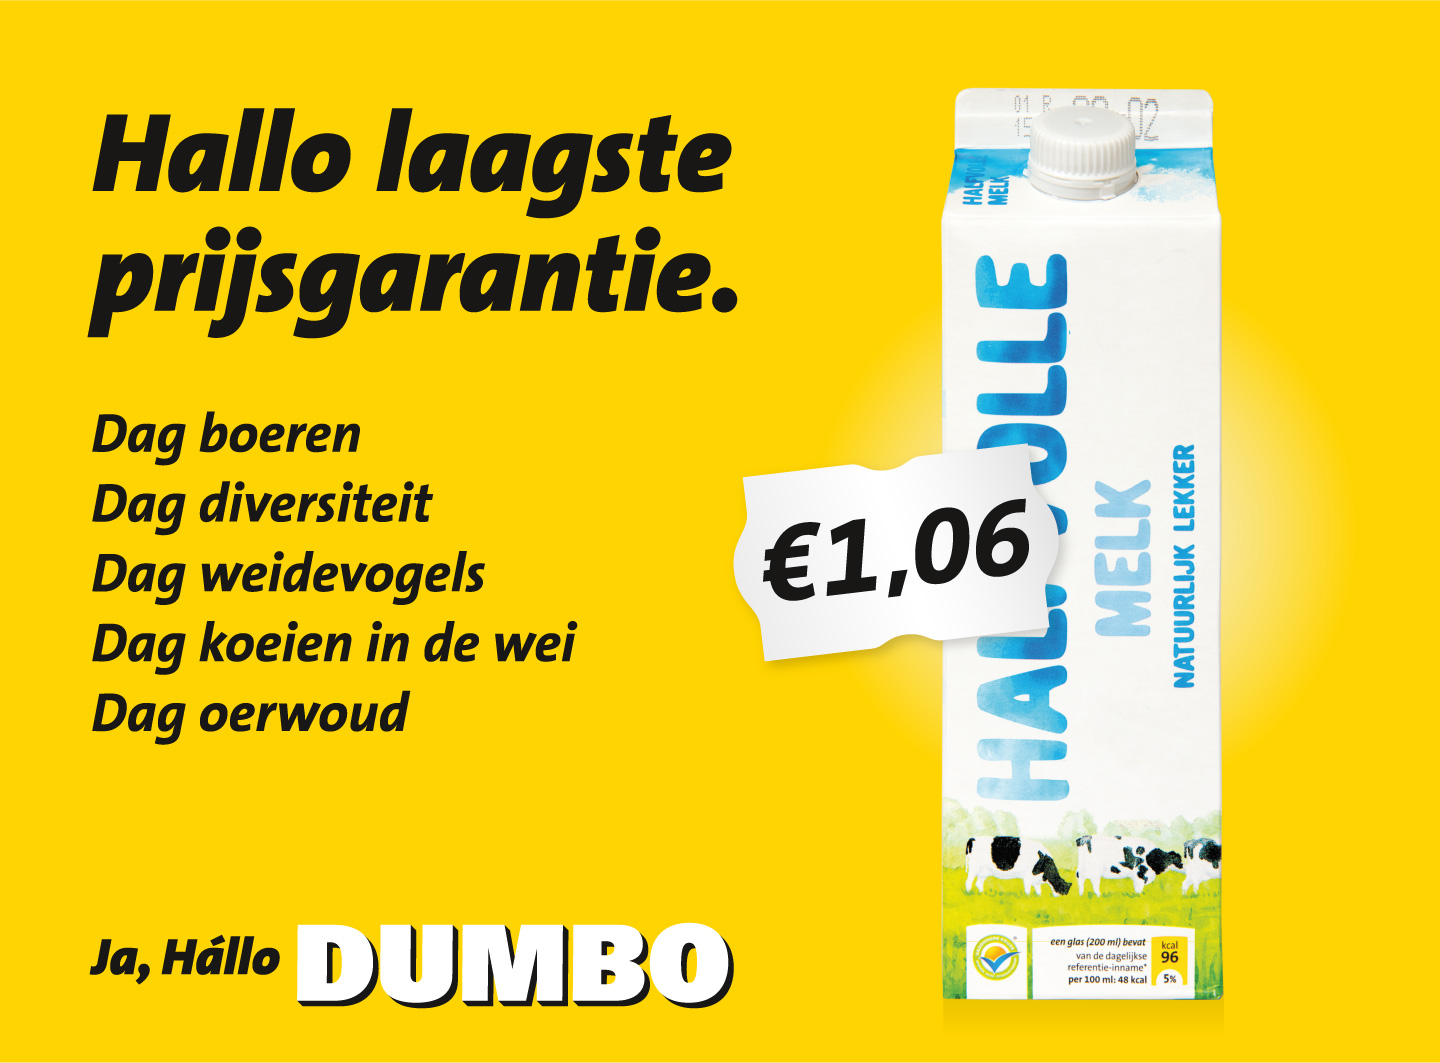 Dagblad-De-Pers-Milieudefensie-Jumbo-melk-advertentie-campagne-graphic-alert-act-impact